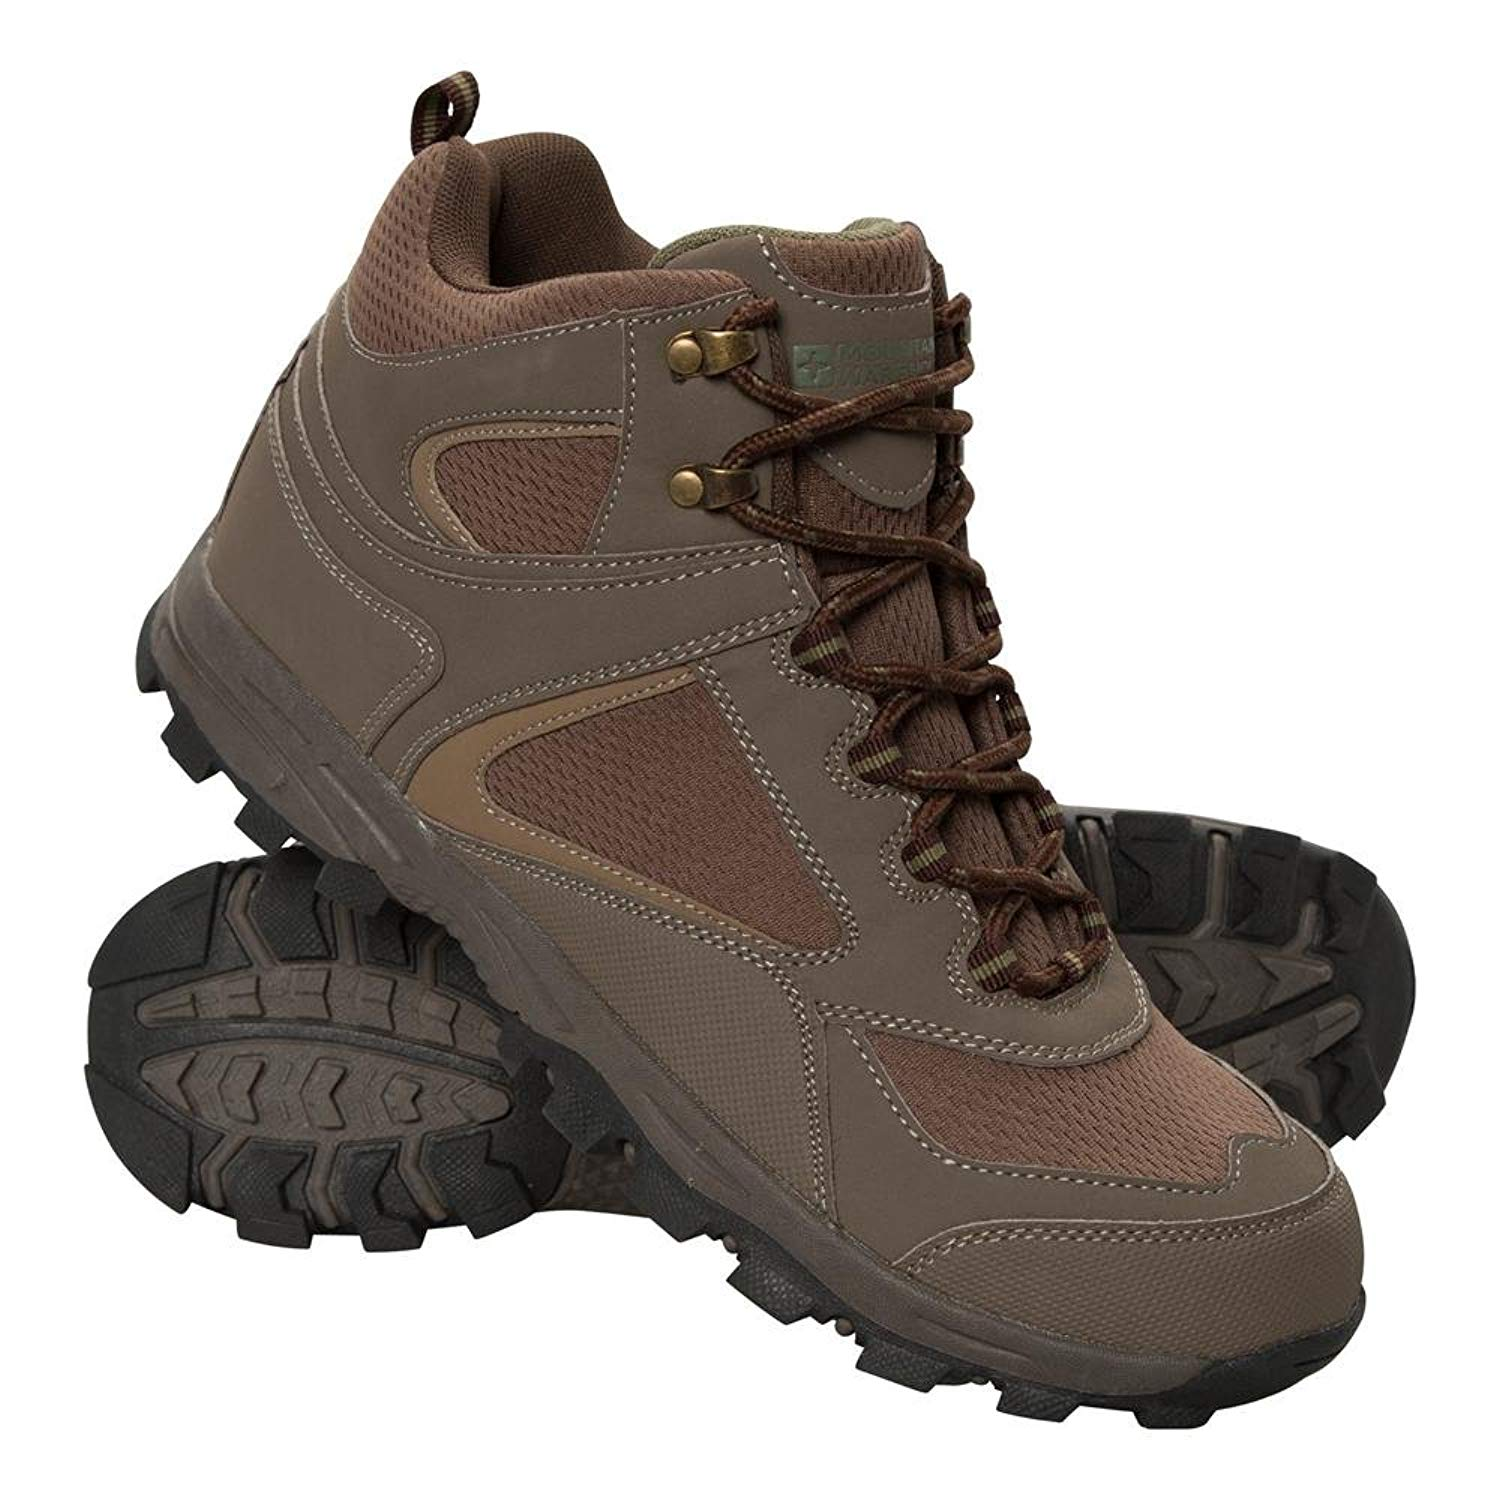 51bc440a0fd87 Cheap Mountain Warehouse Hiking Boots, find Mountain Warehouse ...